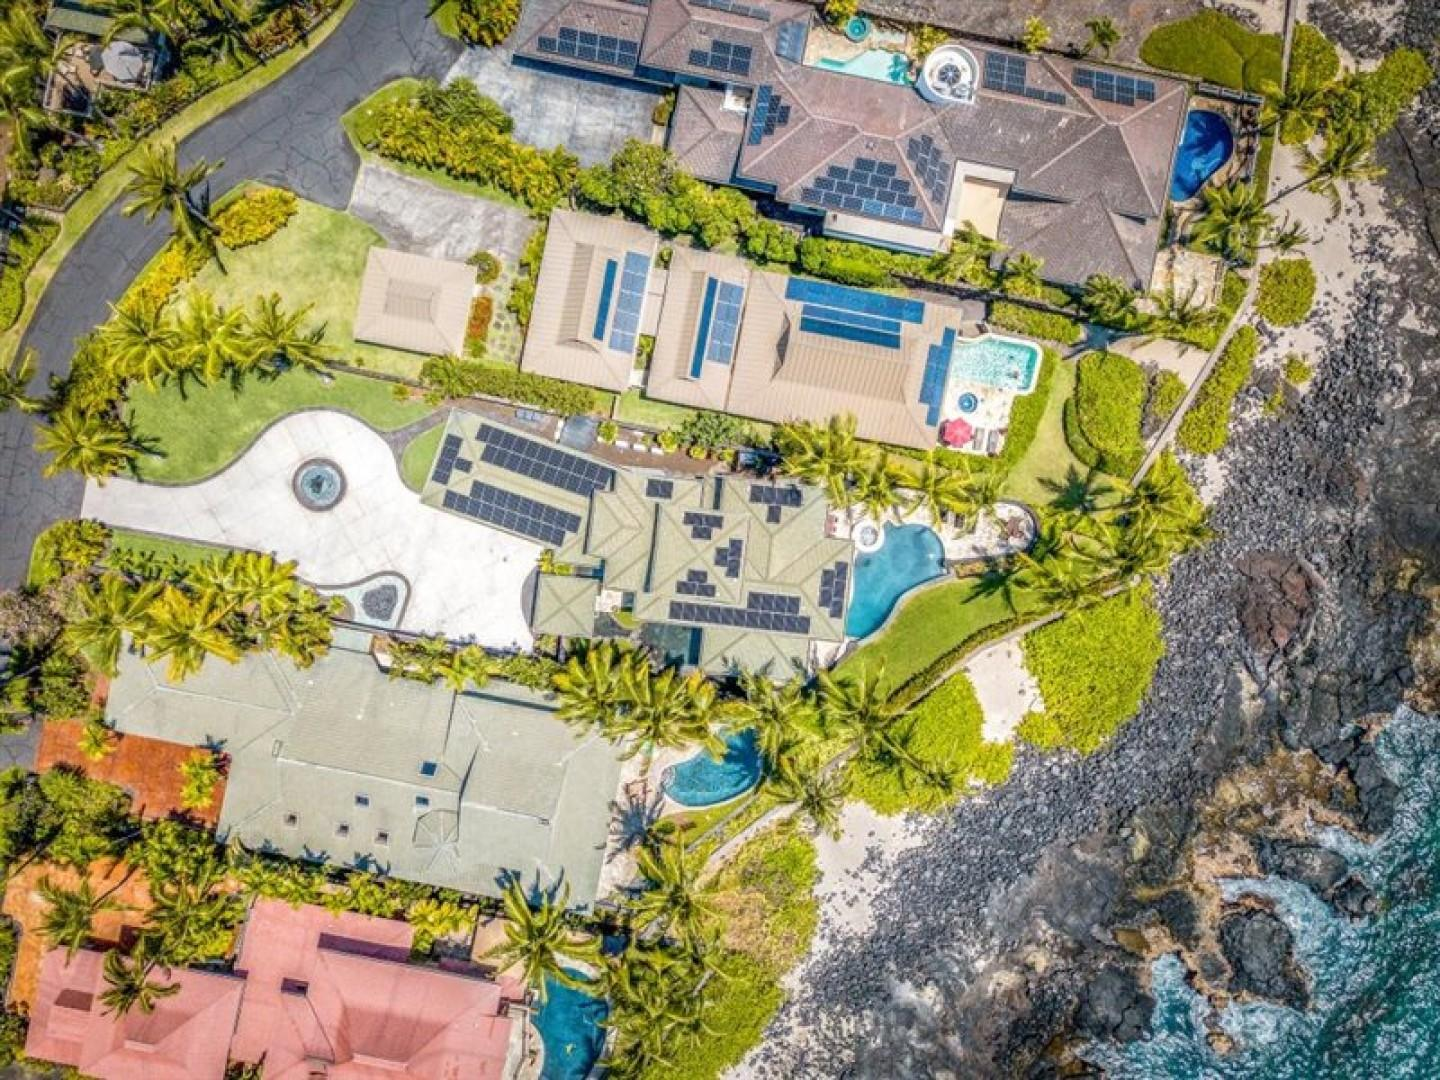 Aerial view of the sheer size of the home and expansive lot!